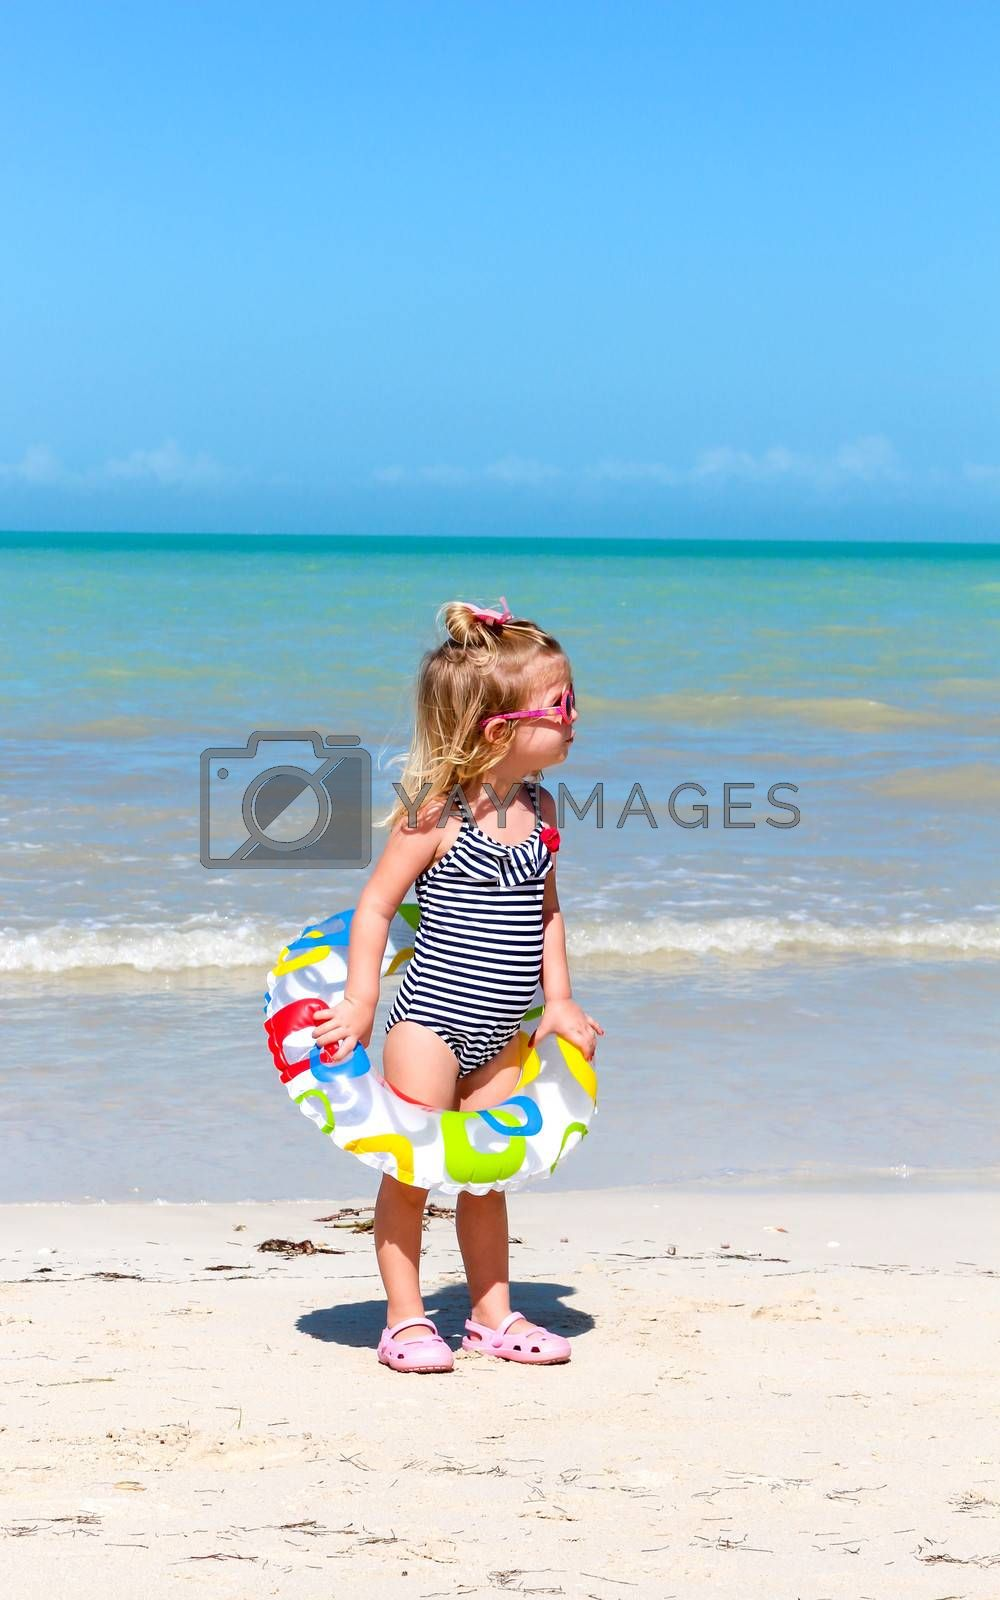 Cute girl having fun on vacations at the beach